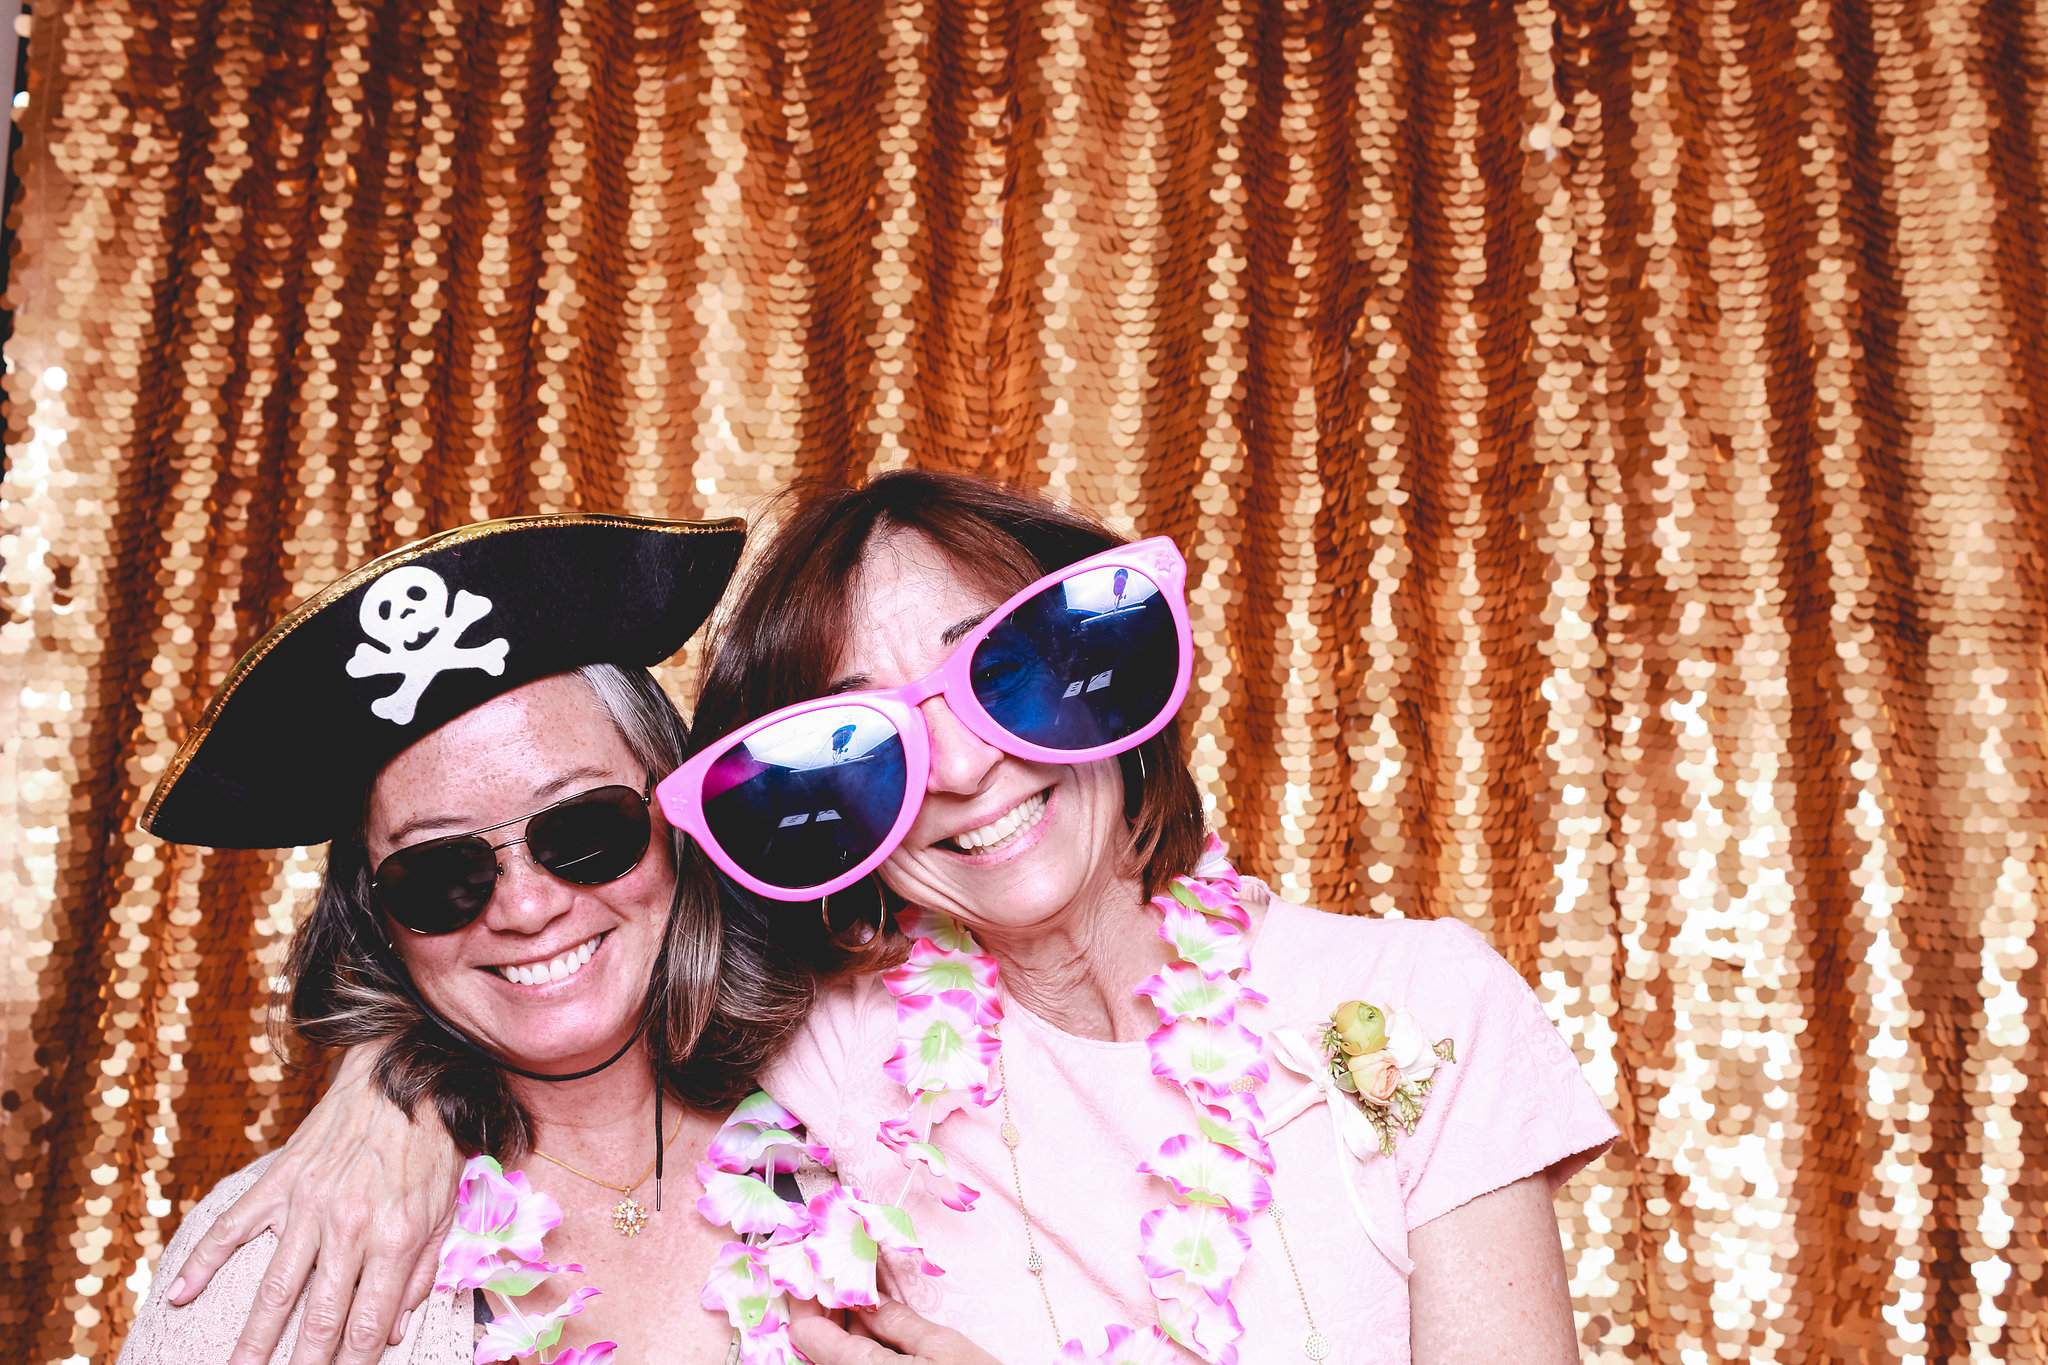 LarsandLauren-photobooth043.jpg